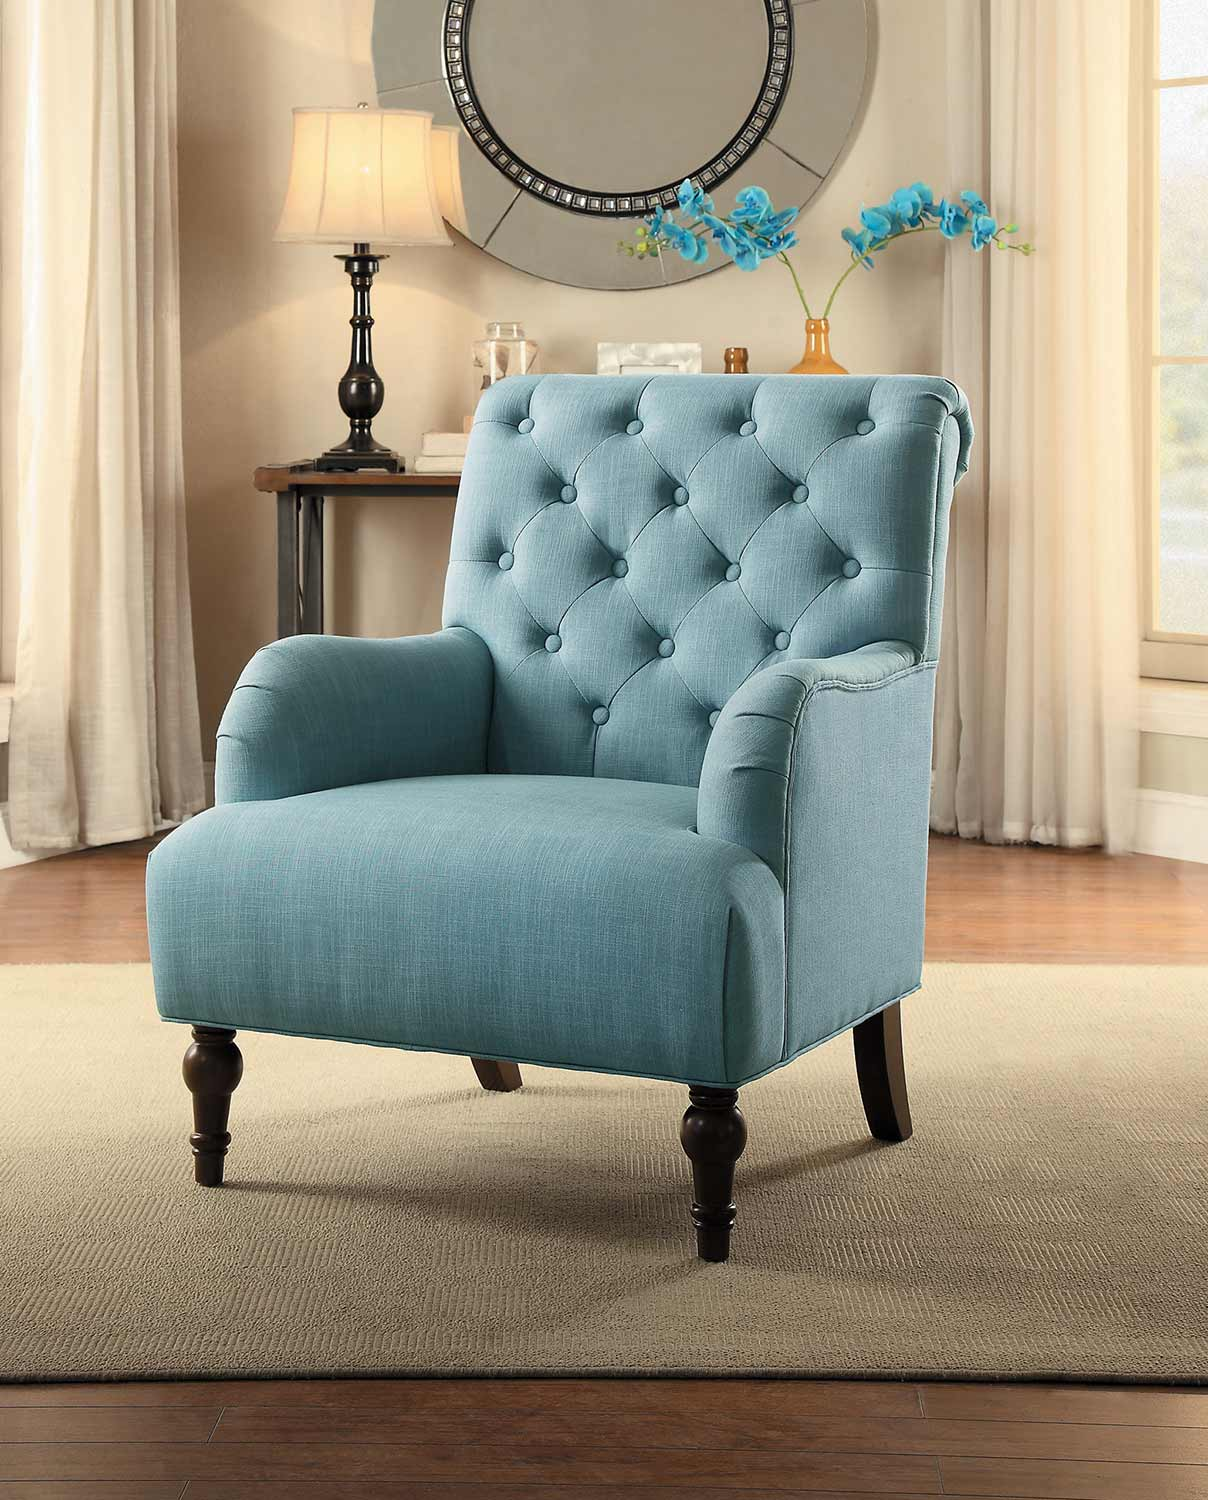 Homelegance Cotswold Accent Chair - Blue